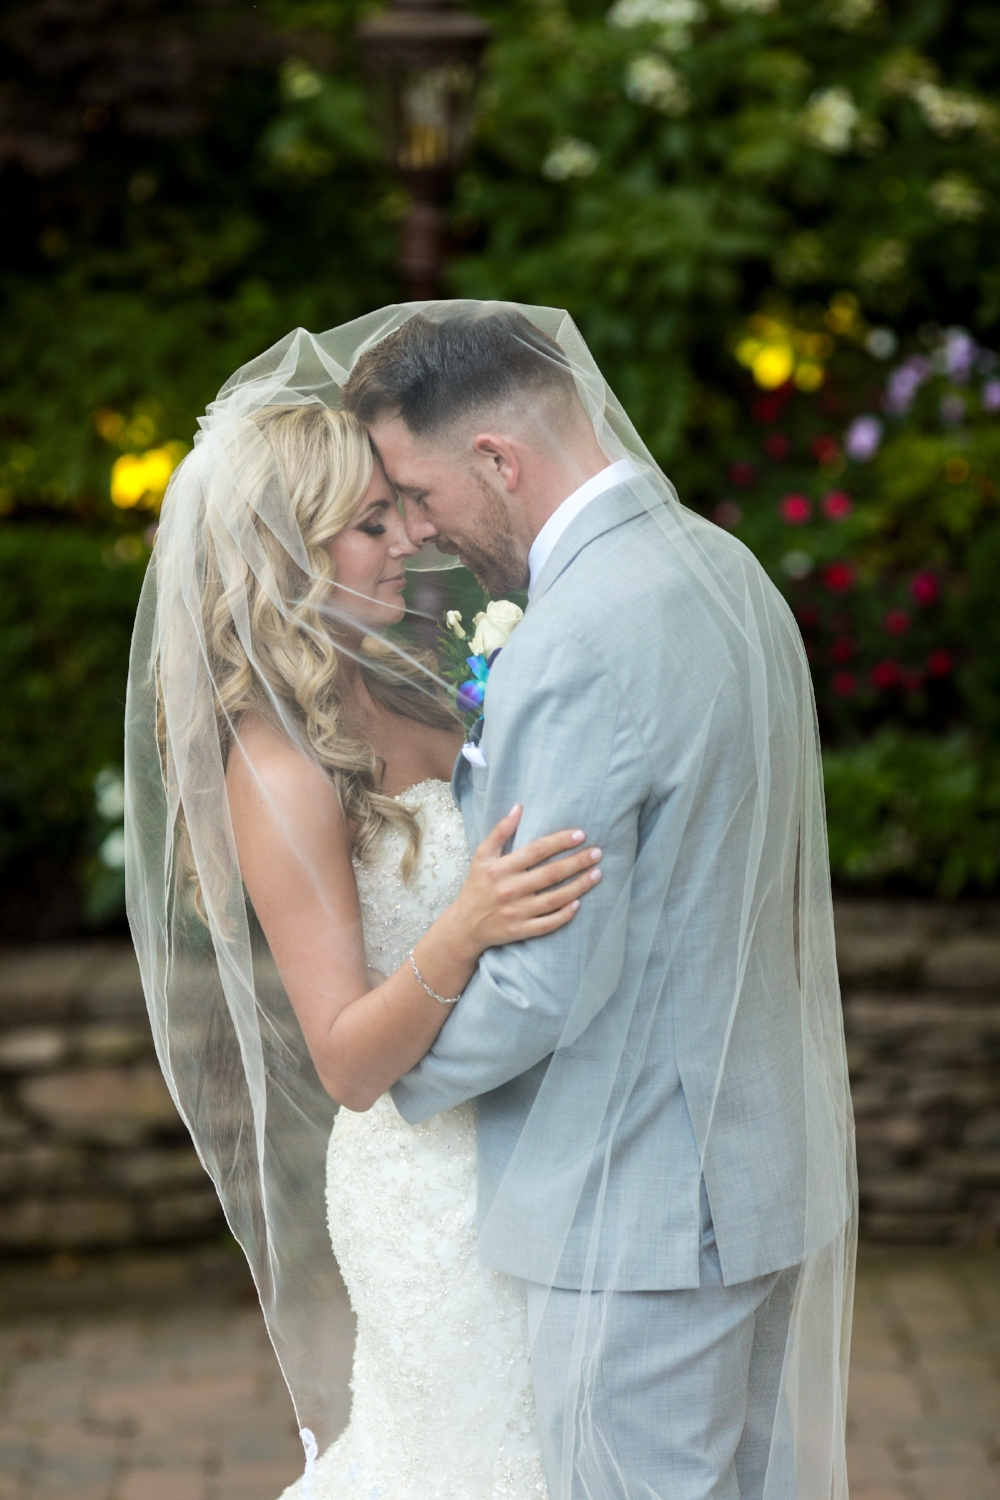 Often we see photos of the bride and groom under the veil. This one is different. This day they were wrapped in the veil of a mother's love.